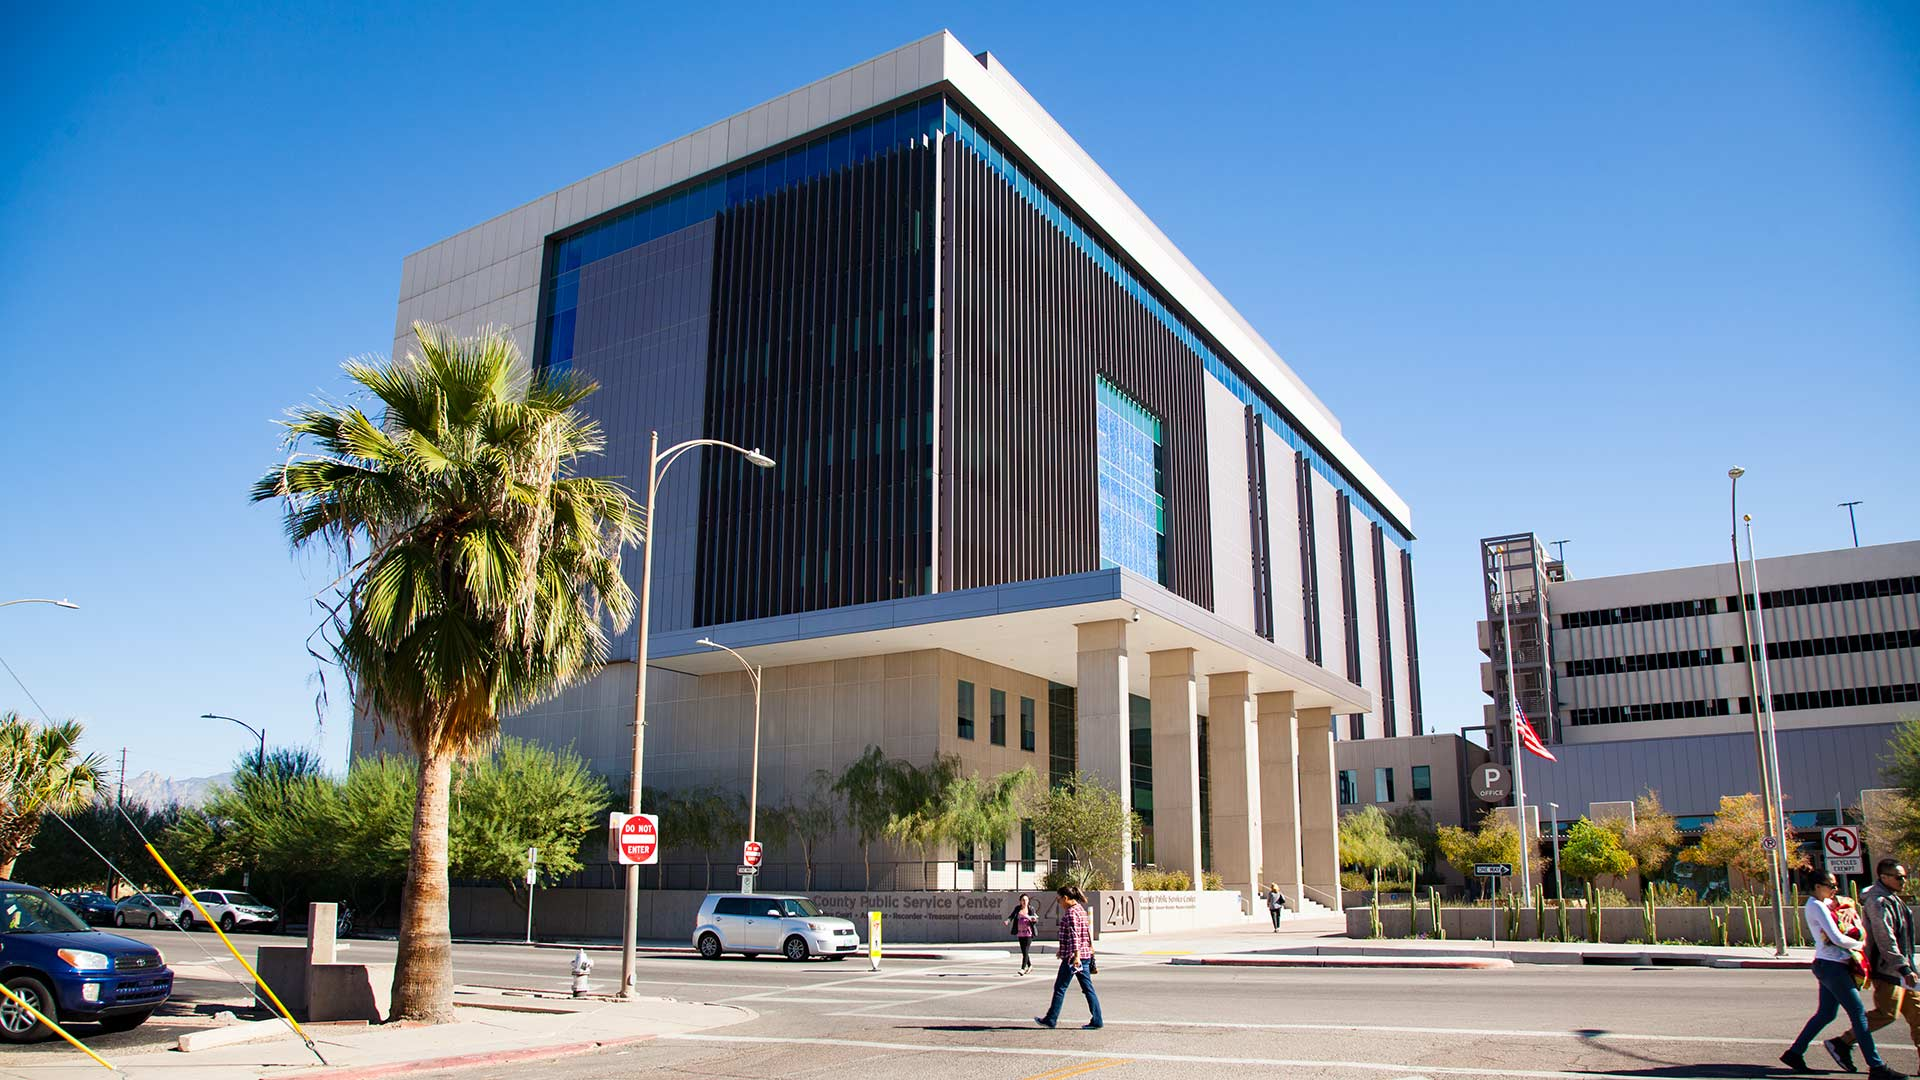 The Pima County Public Service Center is home to the county recorder.